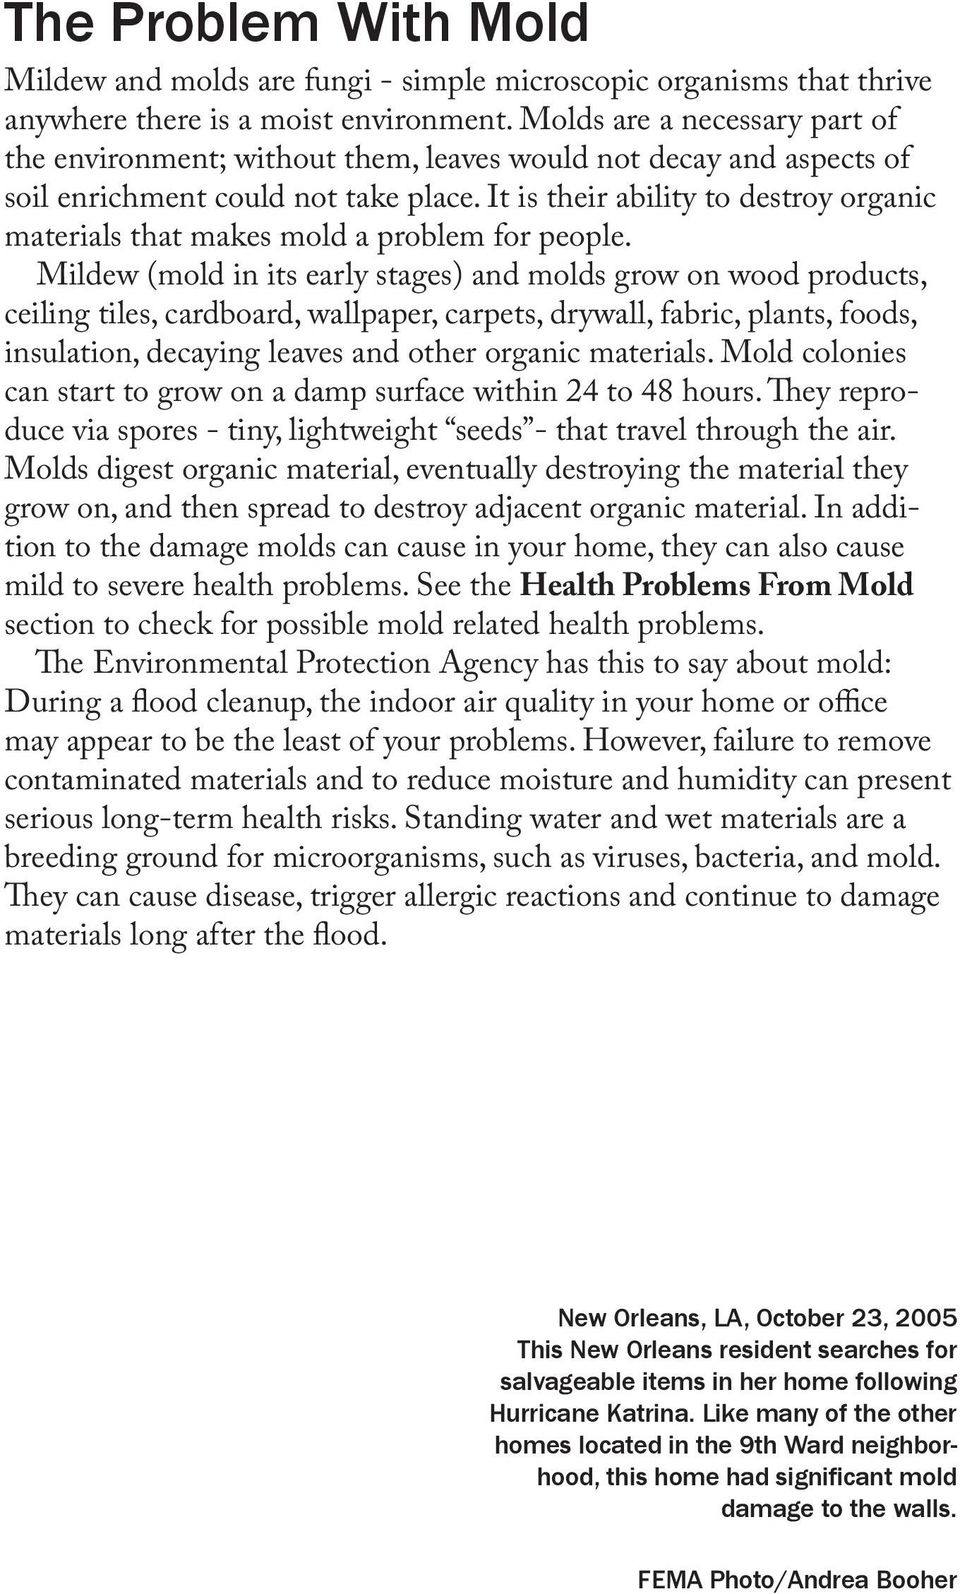 It is their ability to destroy organic materials that makes mold a problem for people.